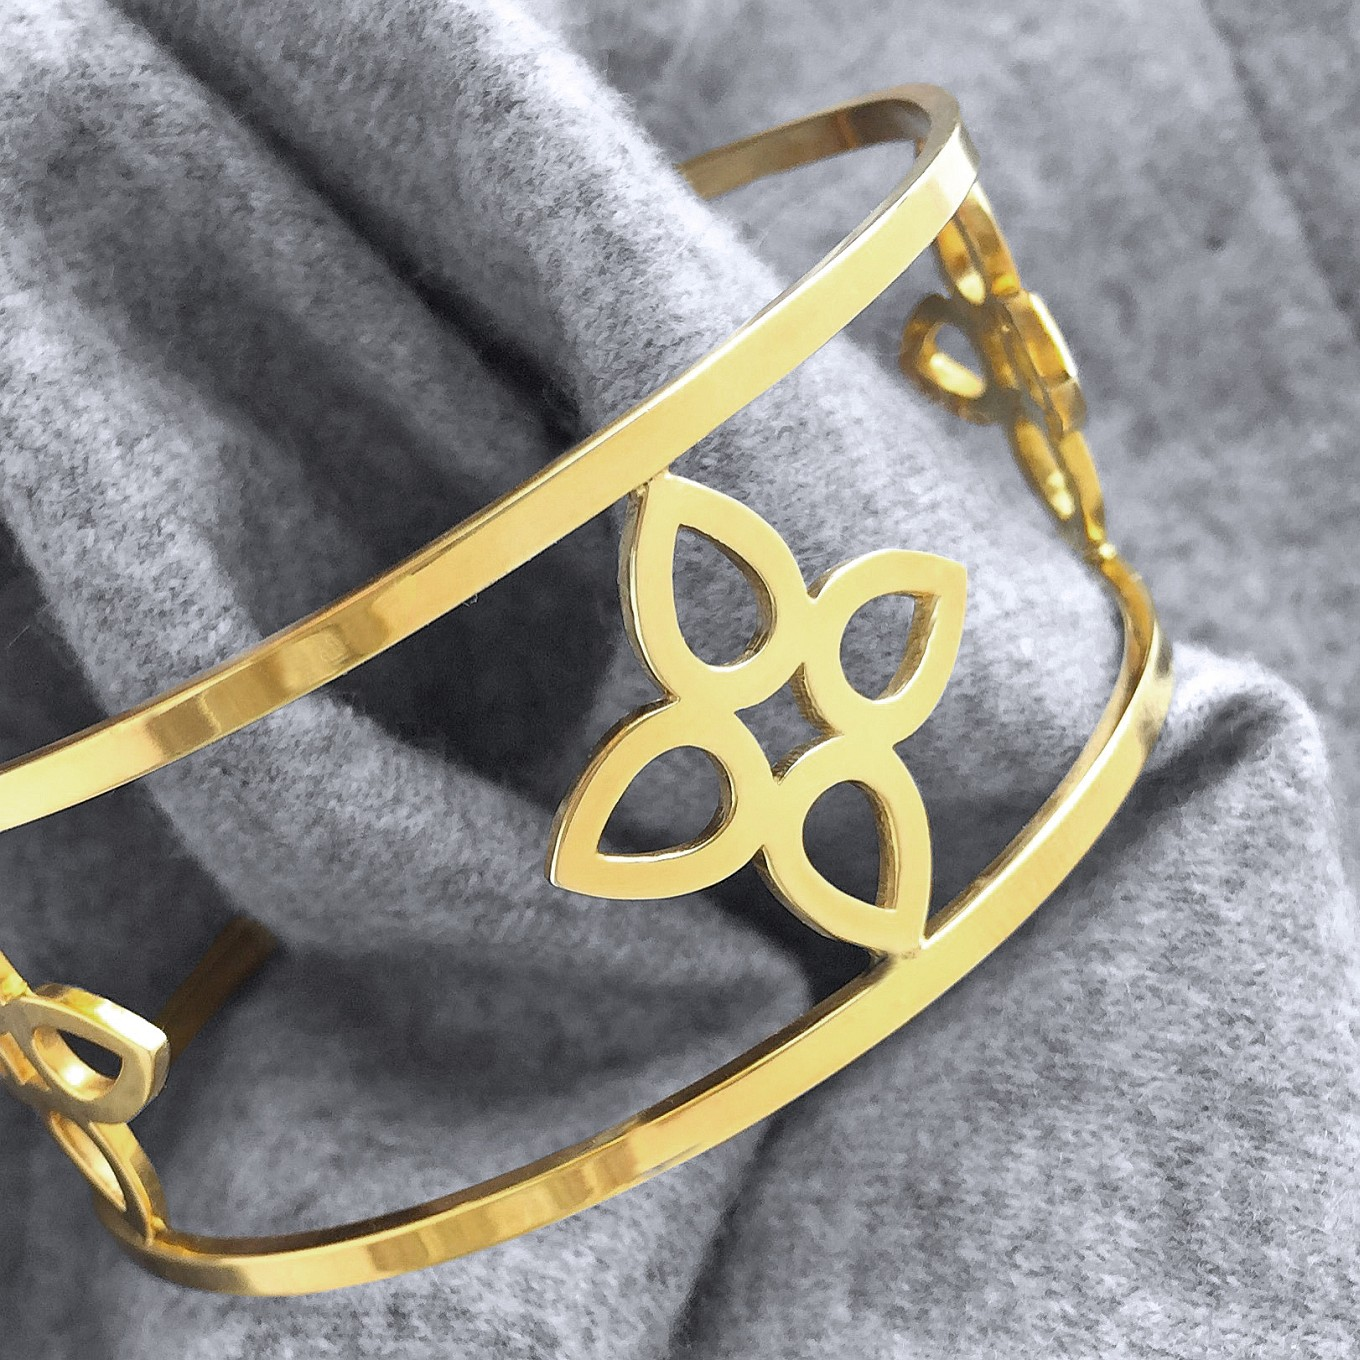 FLAT SEVILLA 3 MOTIF CUFF IN YELLOW GOLD.ALSO AVAILABLE IN STERLING SILVER